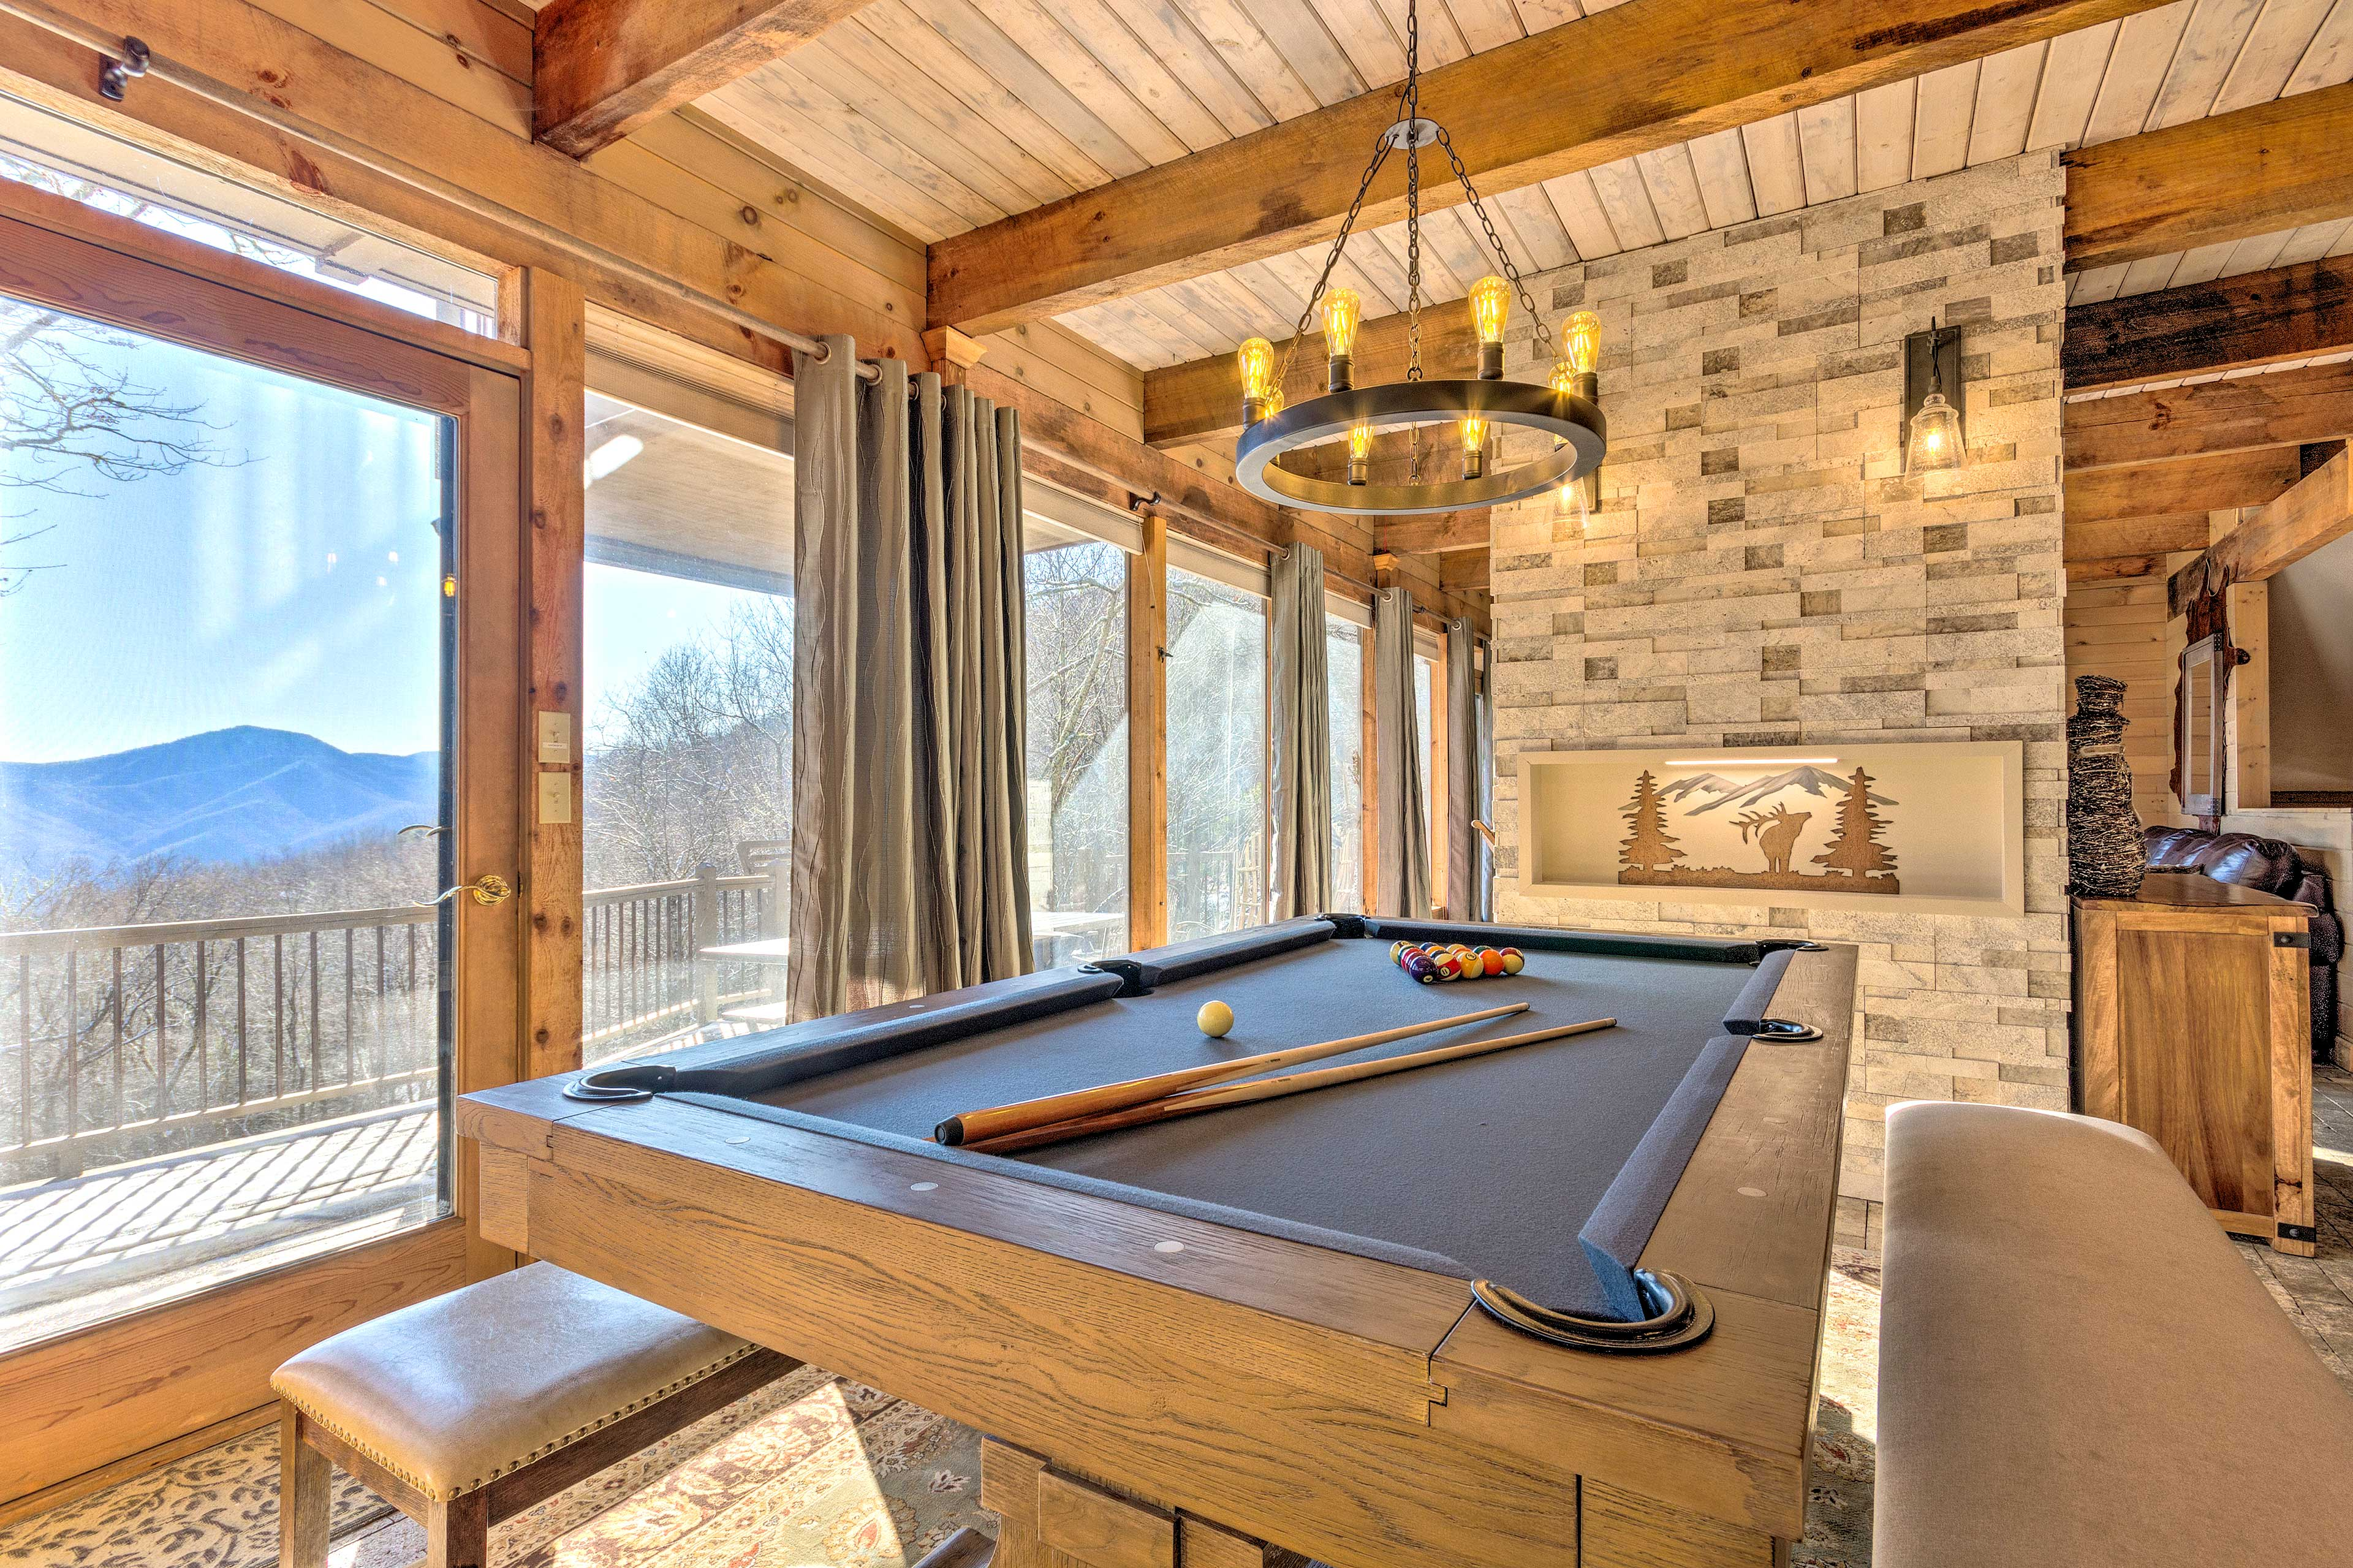 The cabin's interior is beautifully furnished & full of great amenities.